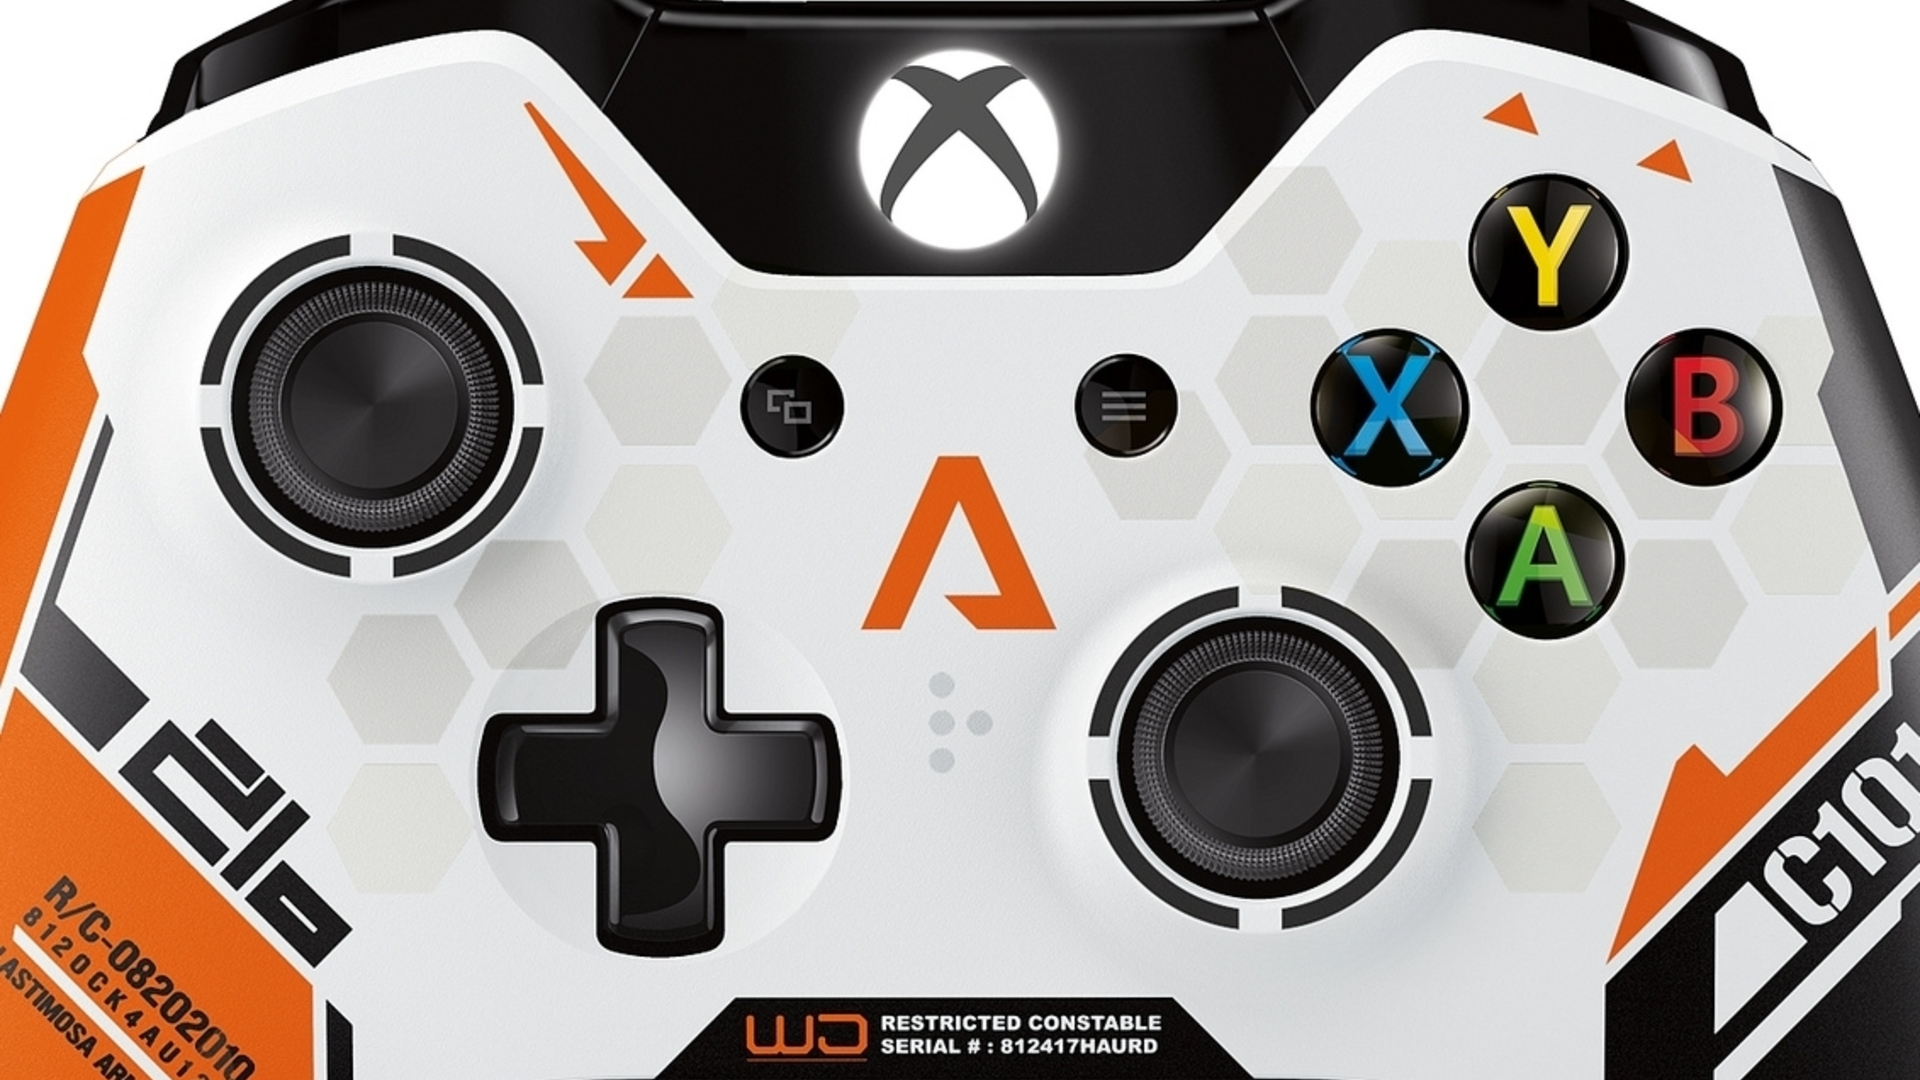 Xbox One's limited edition Titanfall controller looks like this